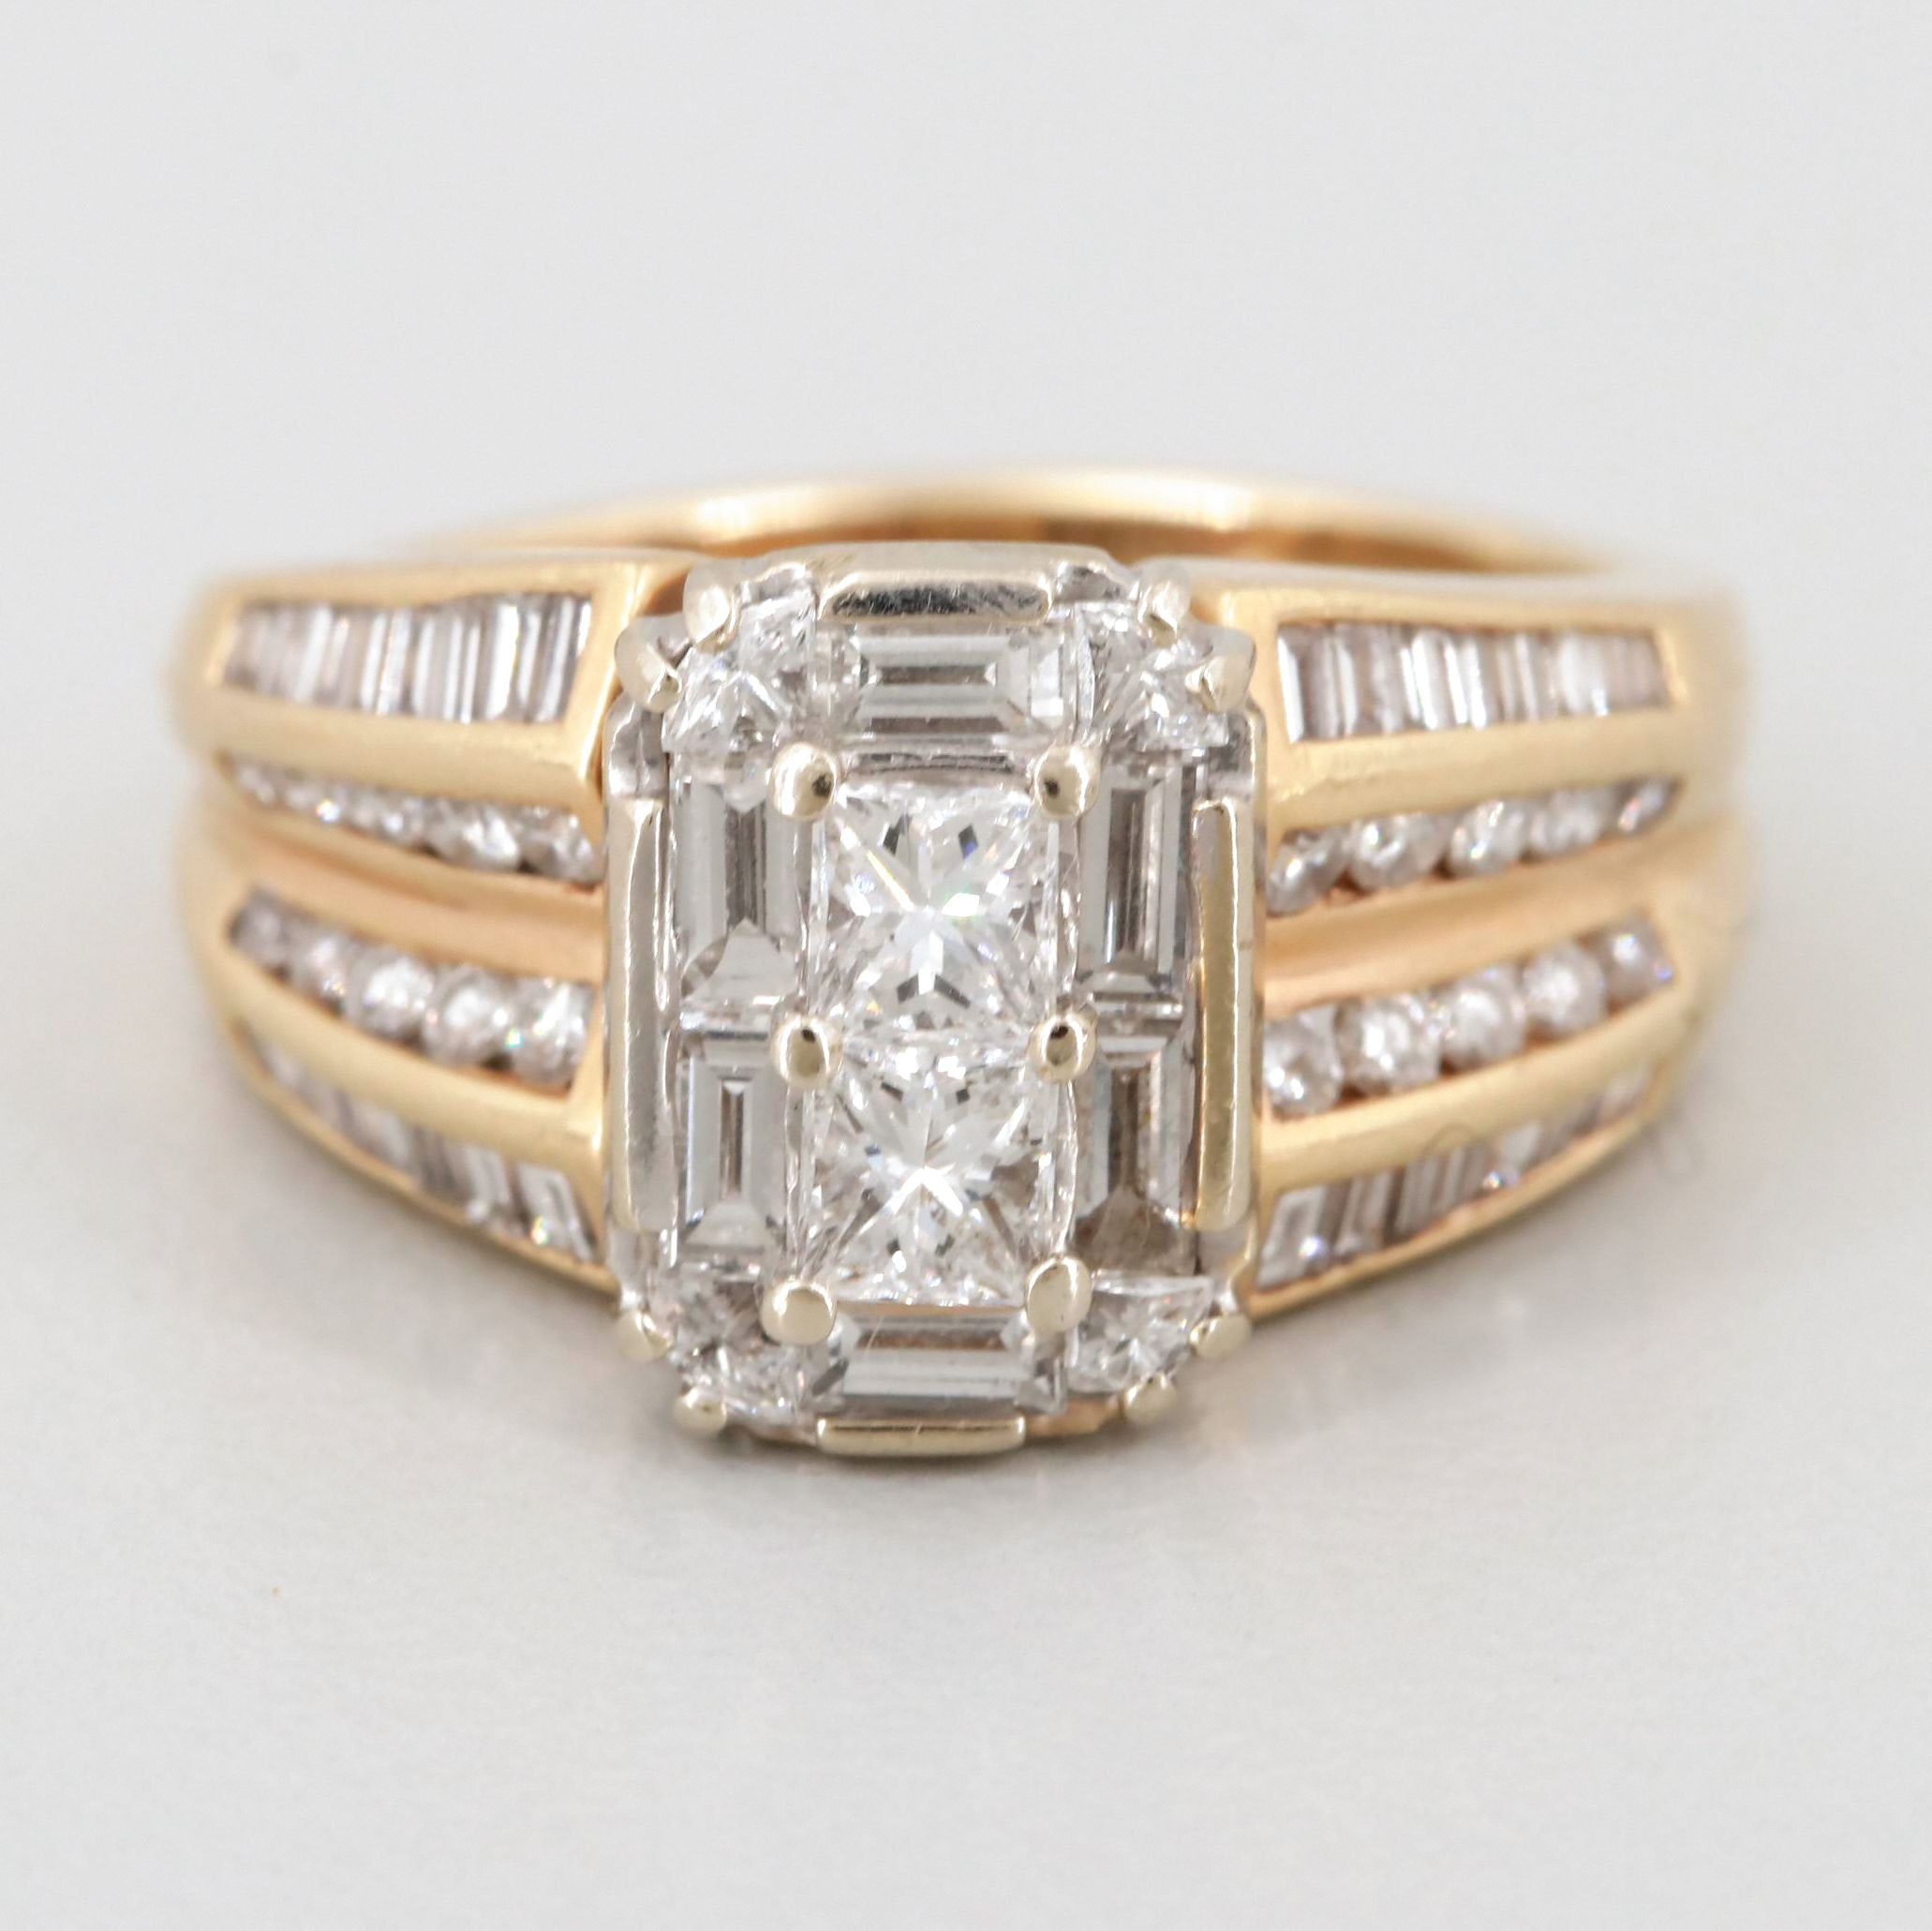 14K White and Gold 1.75 CTW Diamond Ring